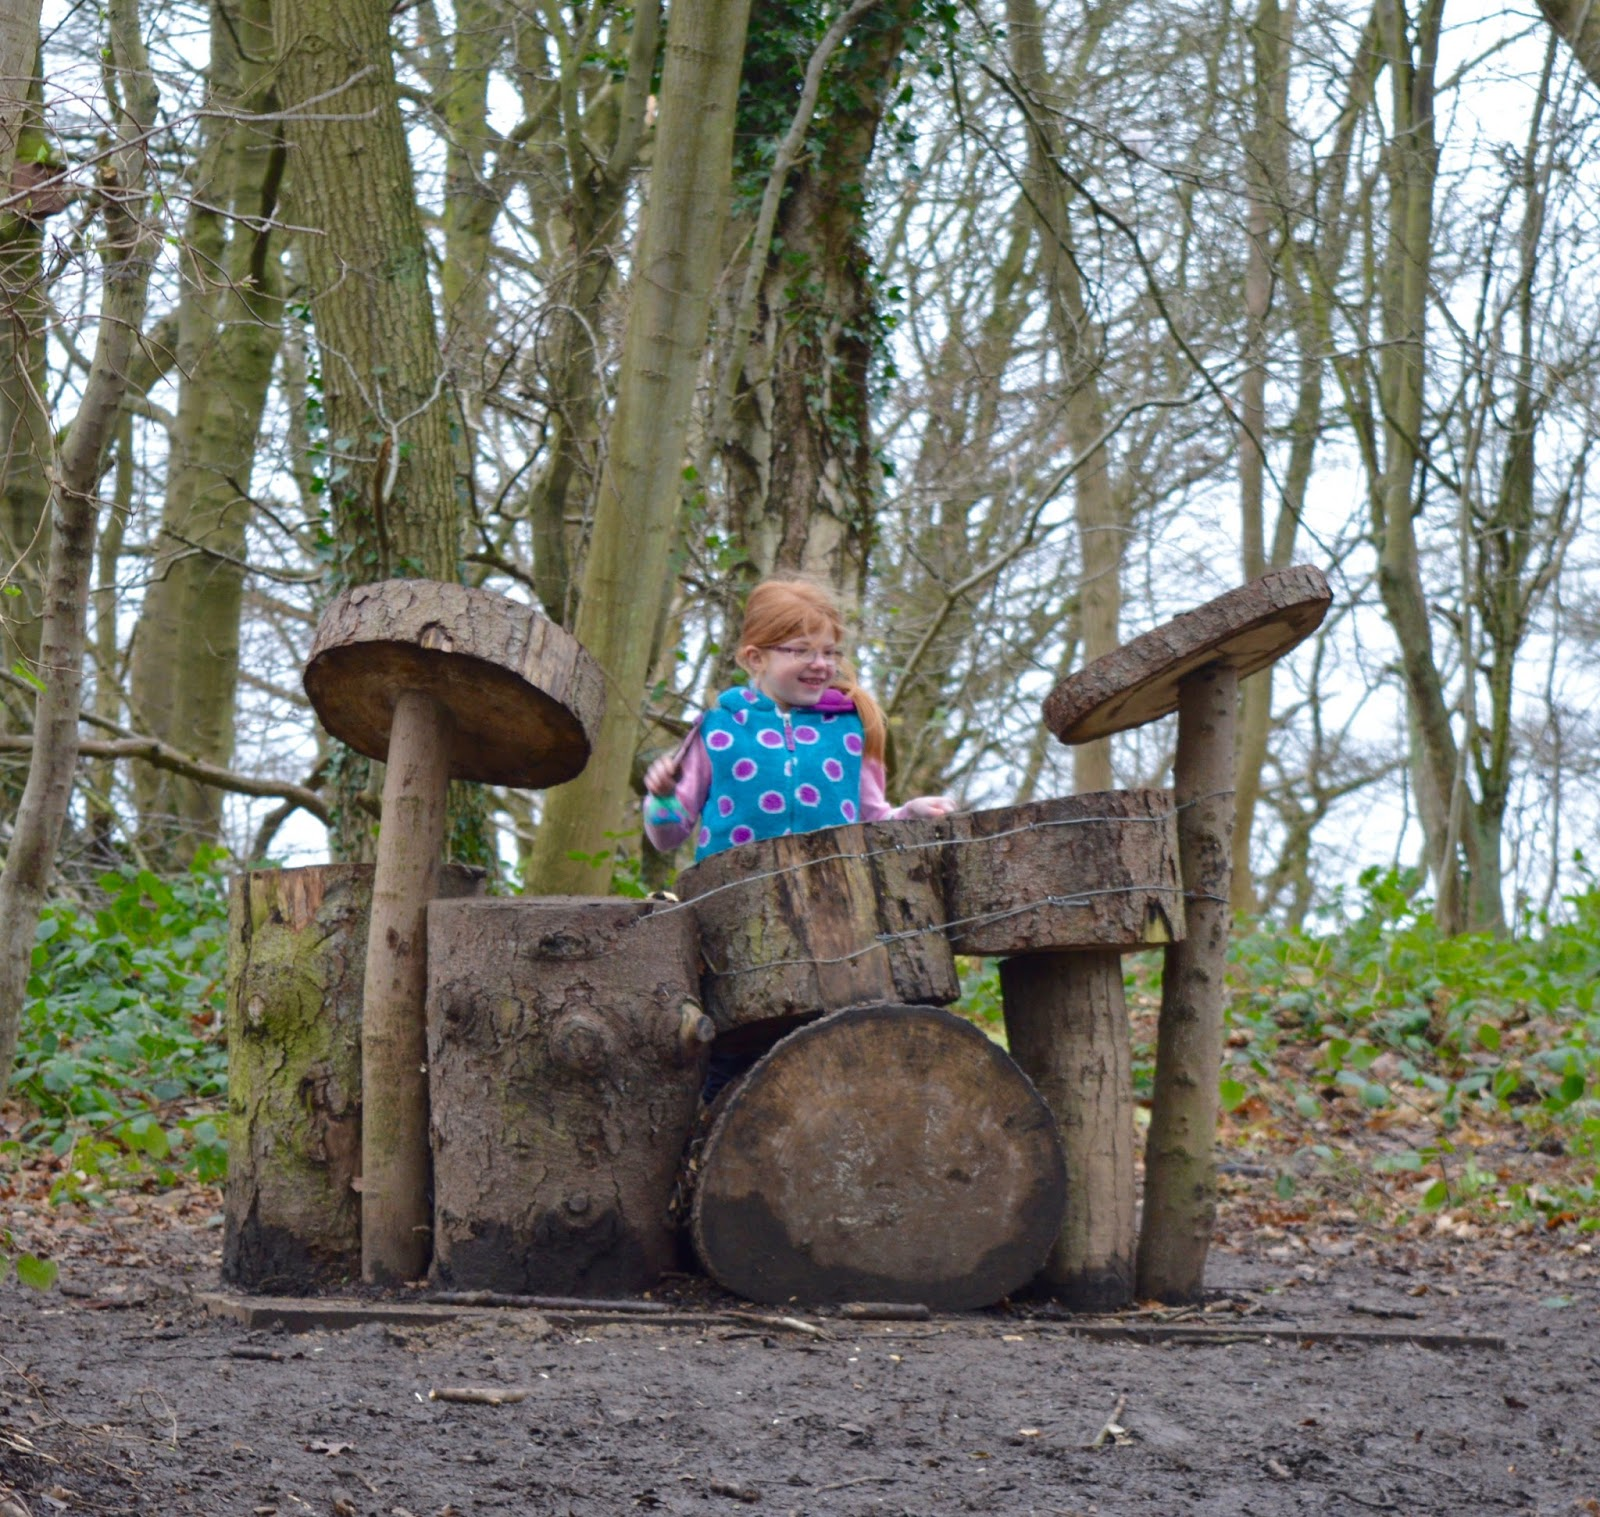 10 of the best family walks in North East England with a cafe and play park nearby - Plessey Woods